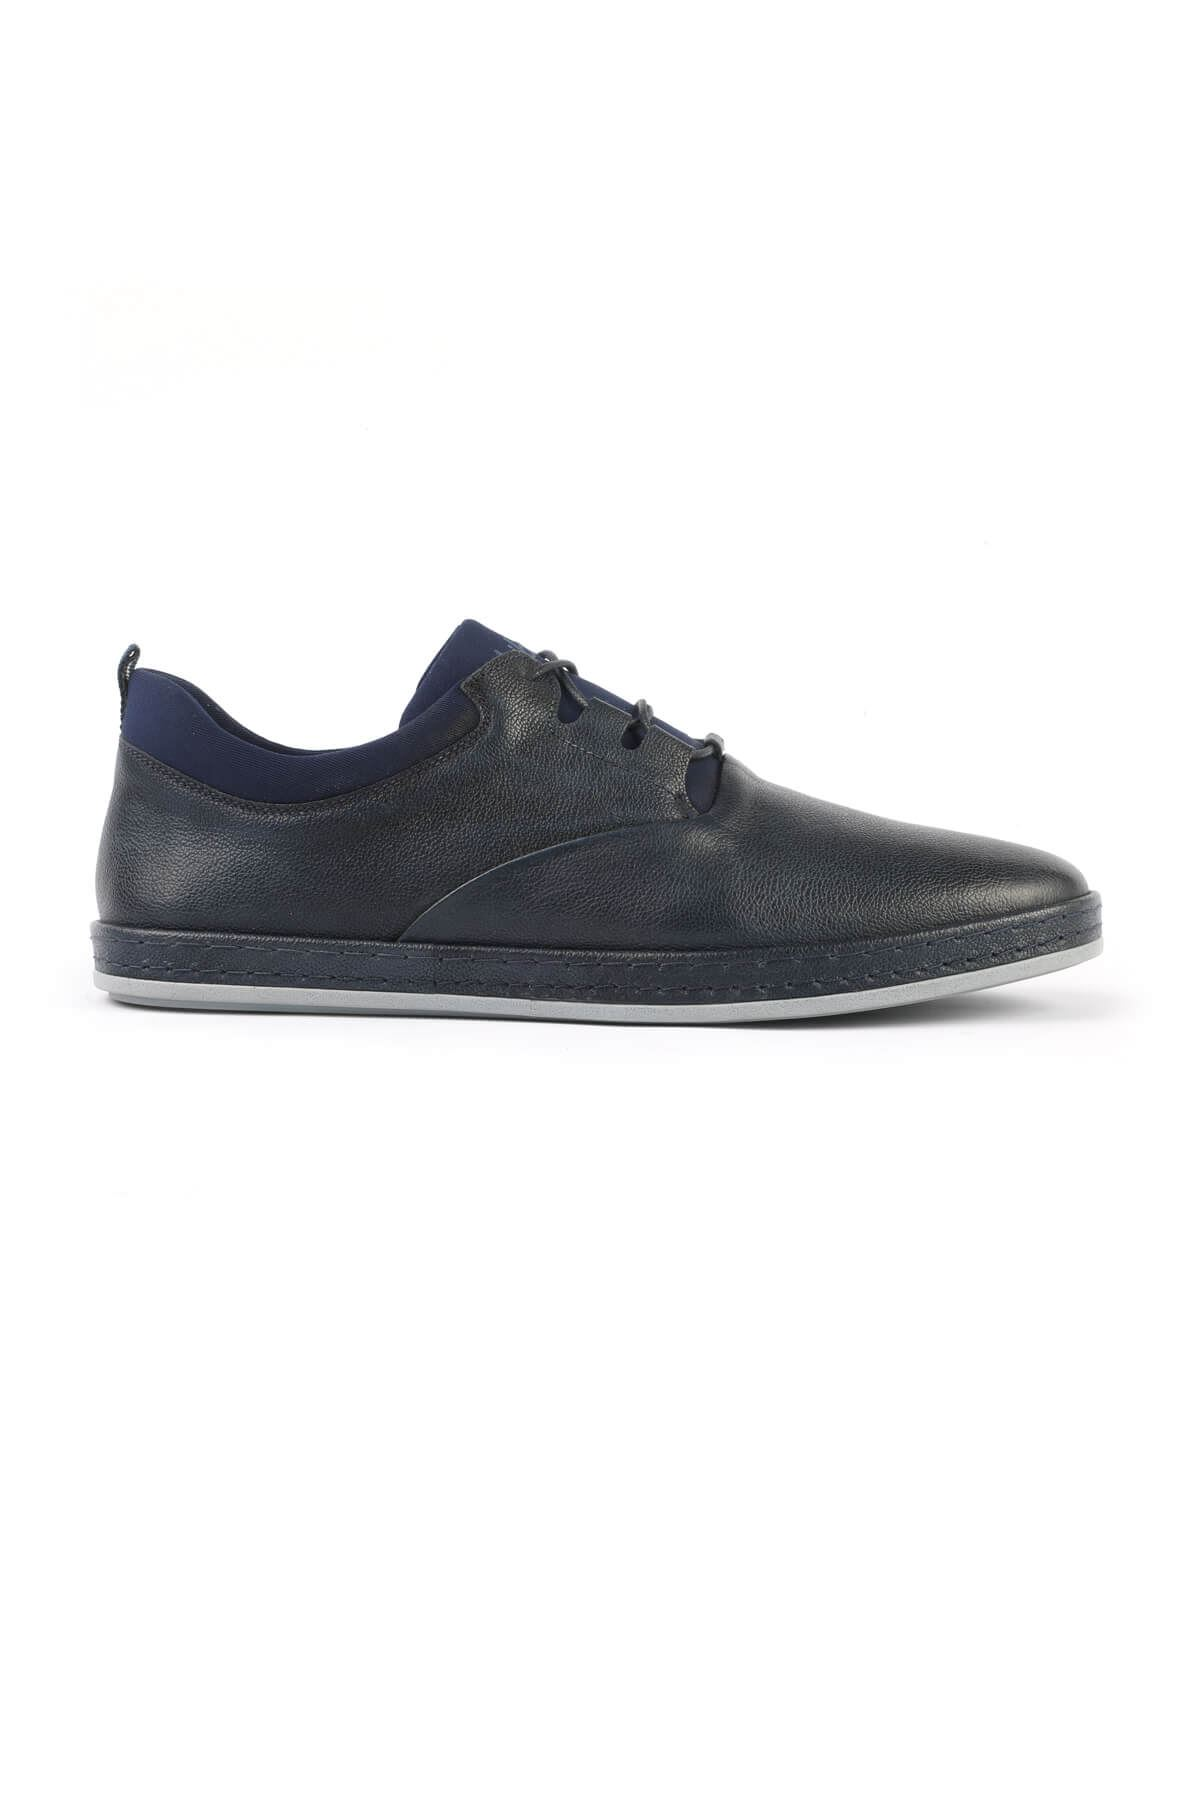 Libero 2979 Navy Blue Casual Shoes